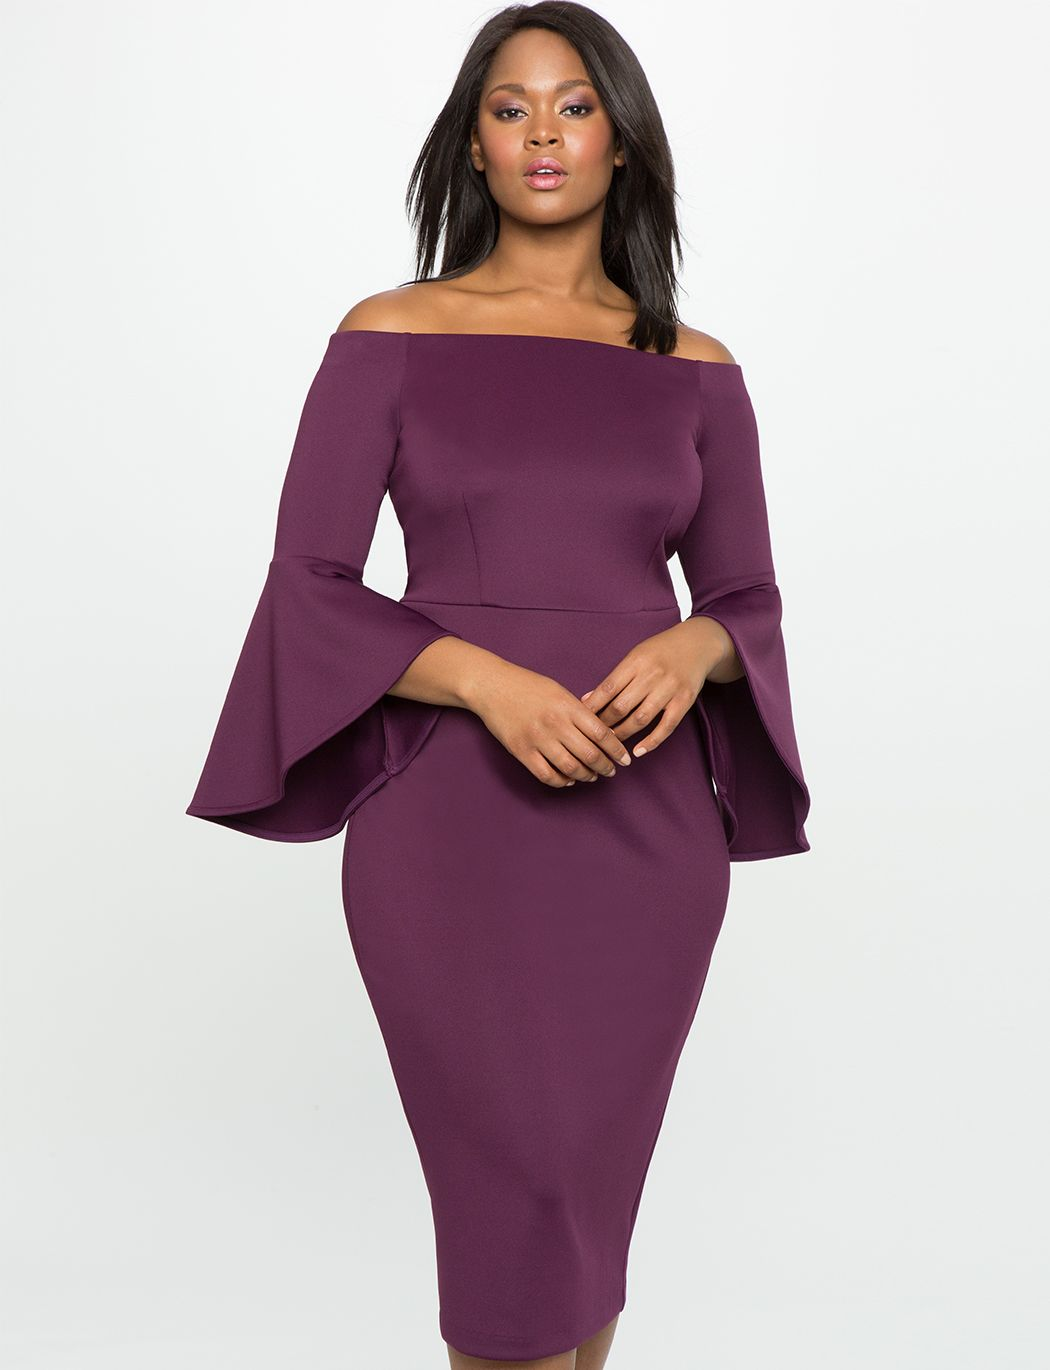 8450e19954838 Studio Off the Shoulder Flare Sleeve Dress